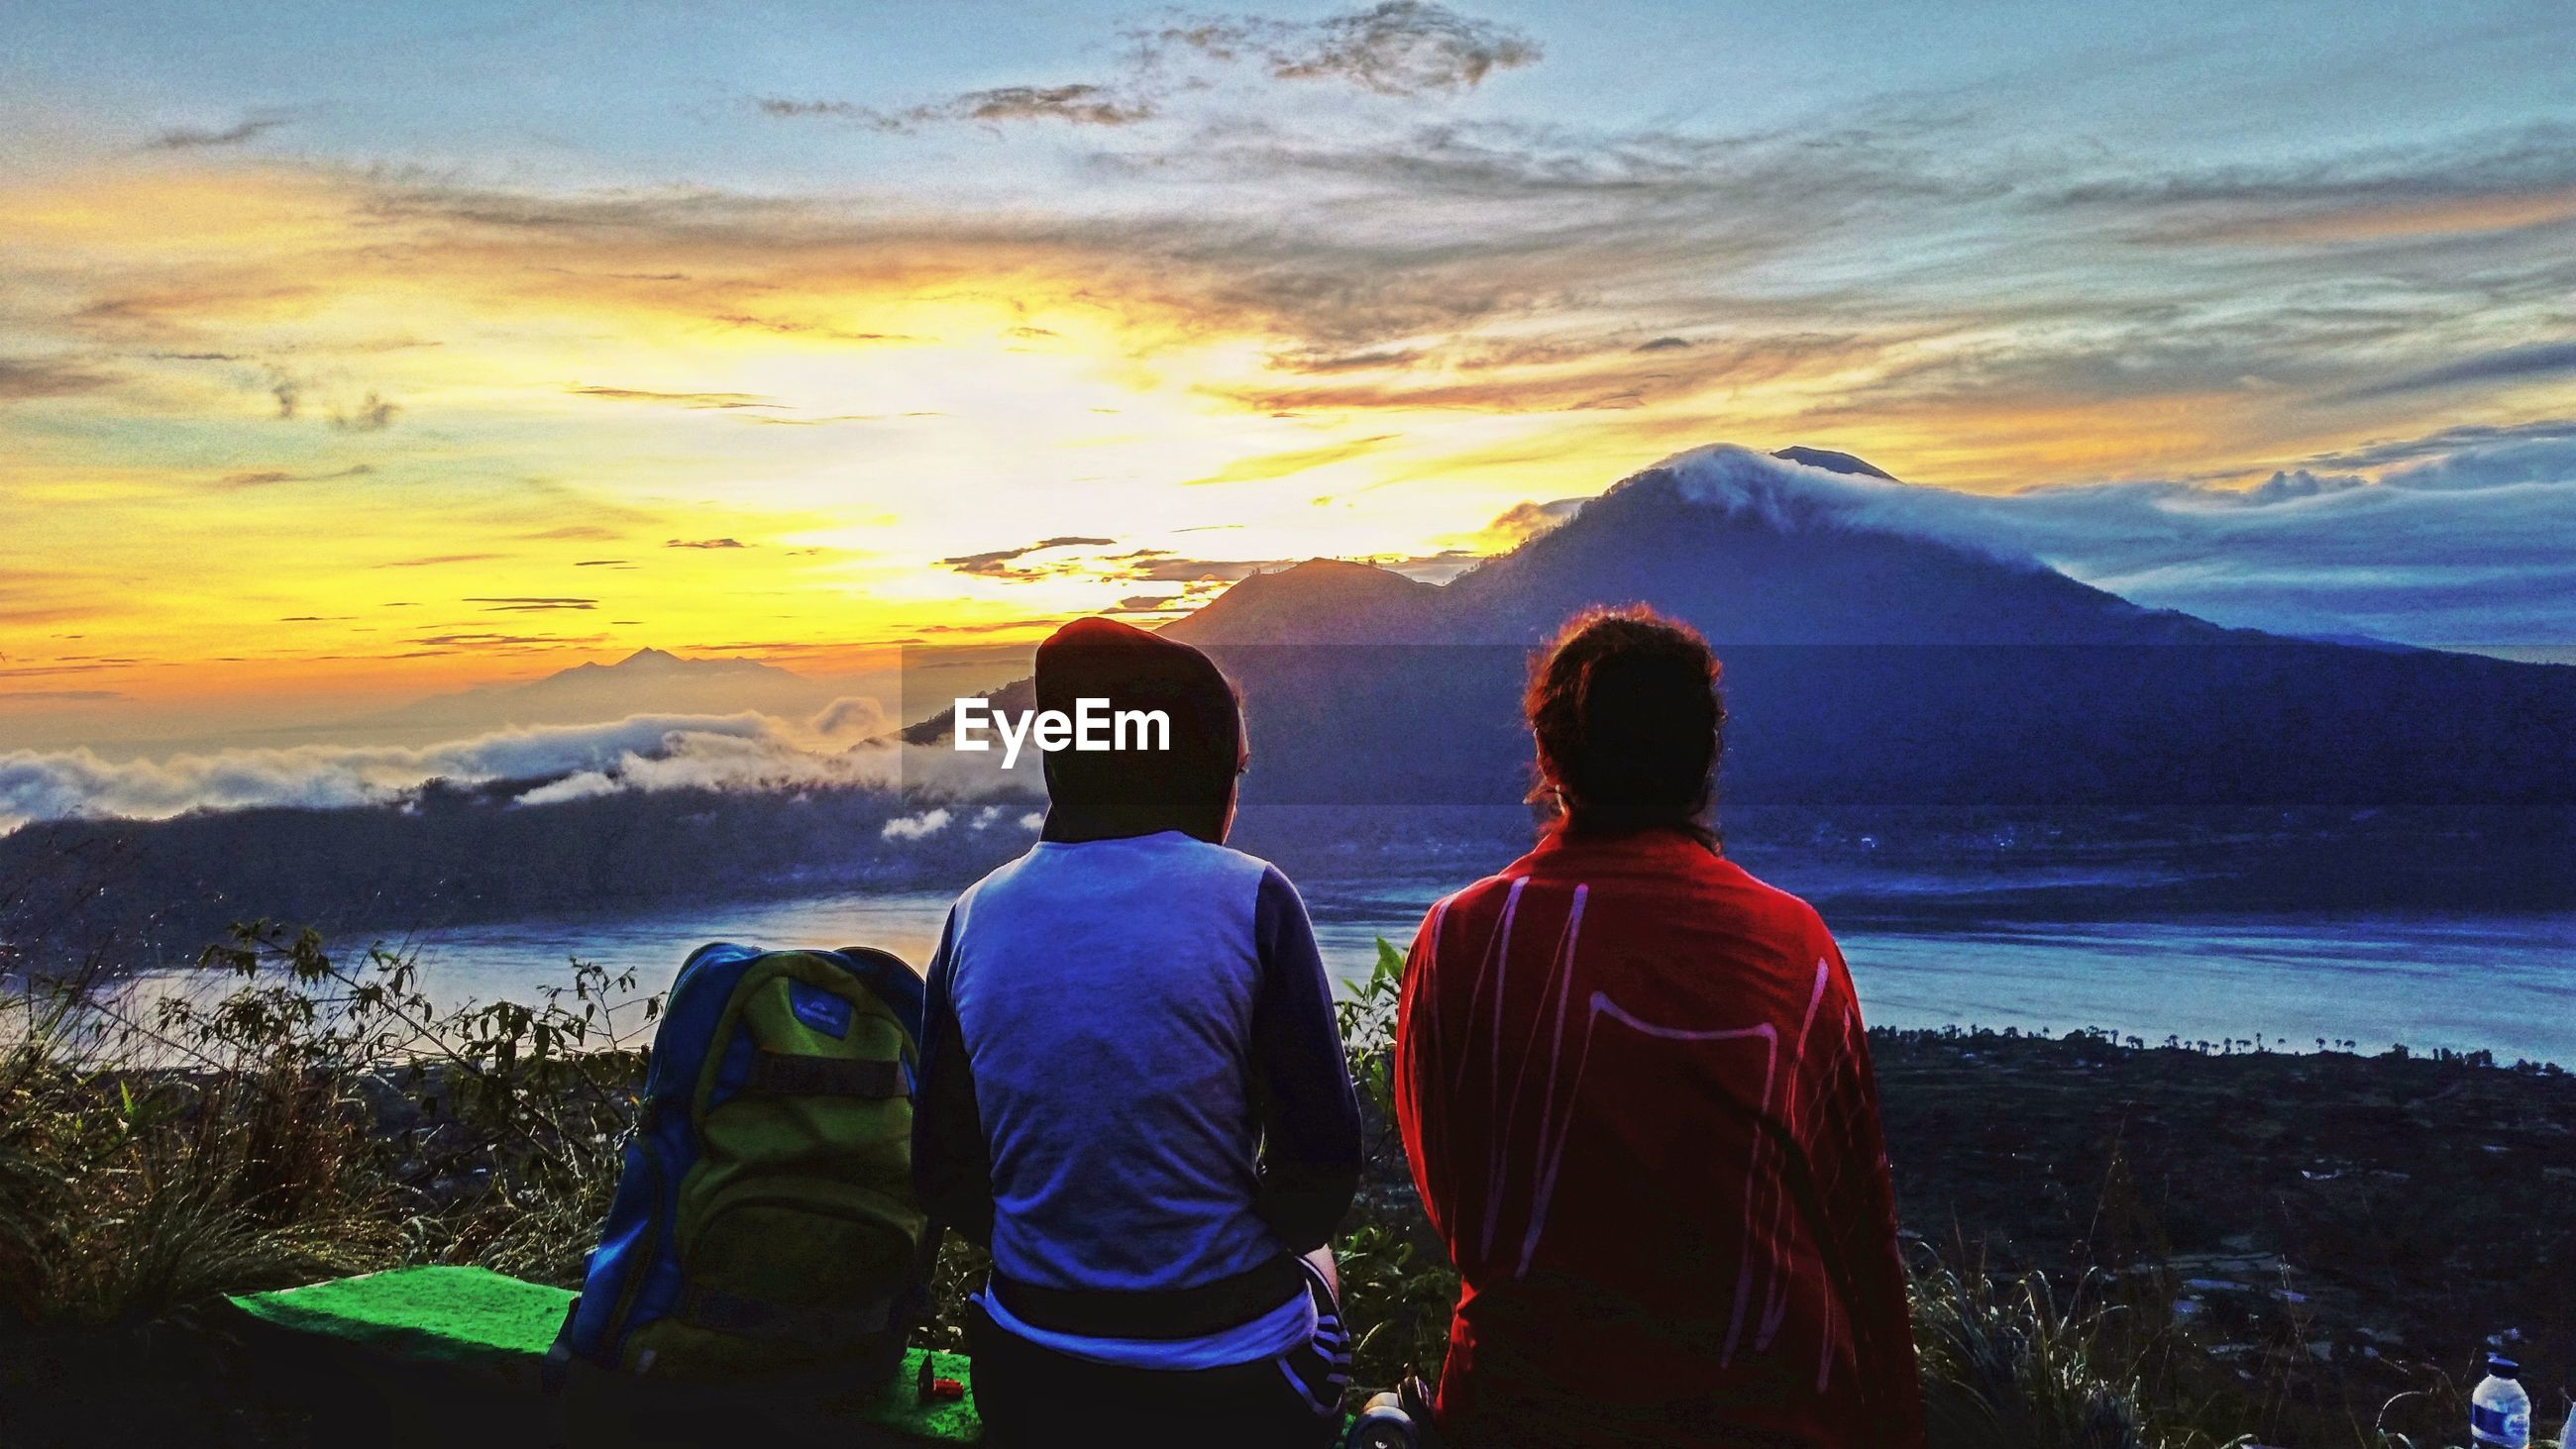 REAR VIEW OF MEN ON MOUNTAIN DURING SUNSET